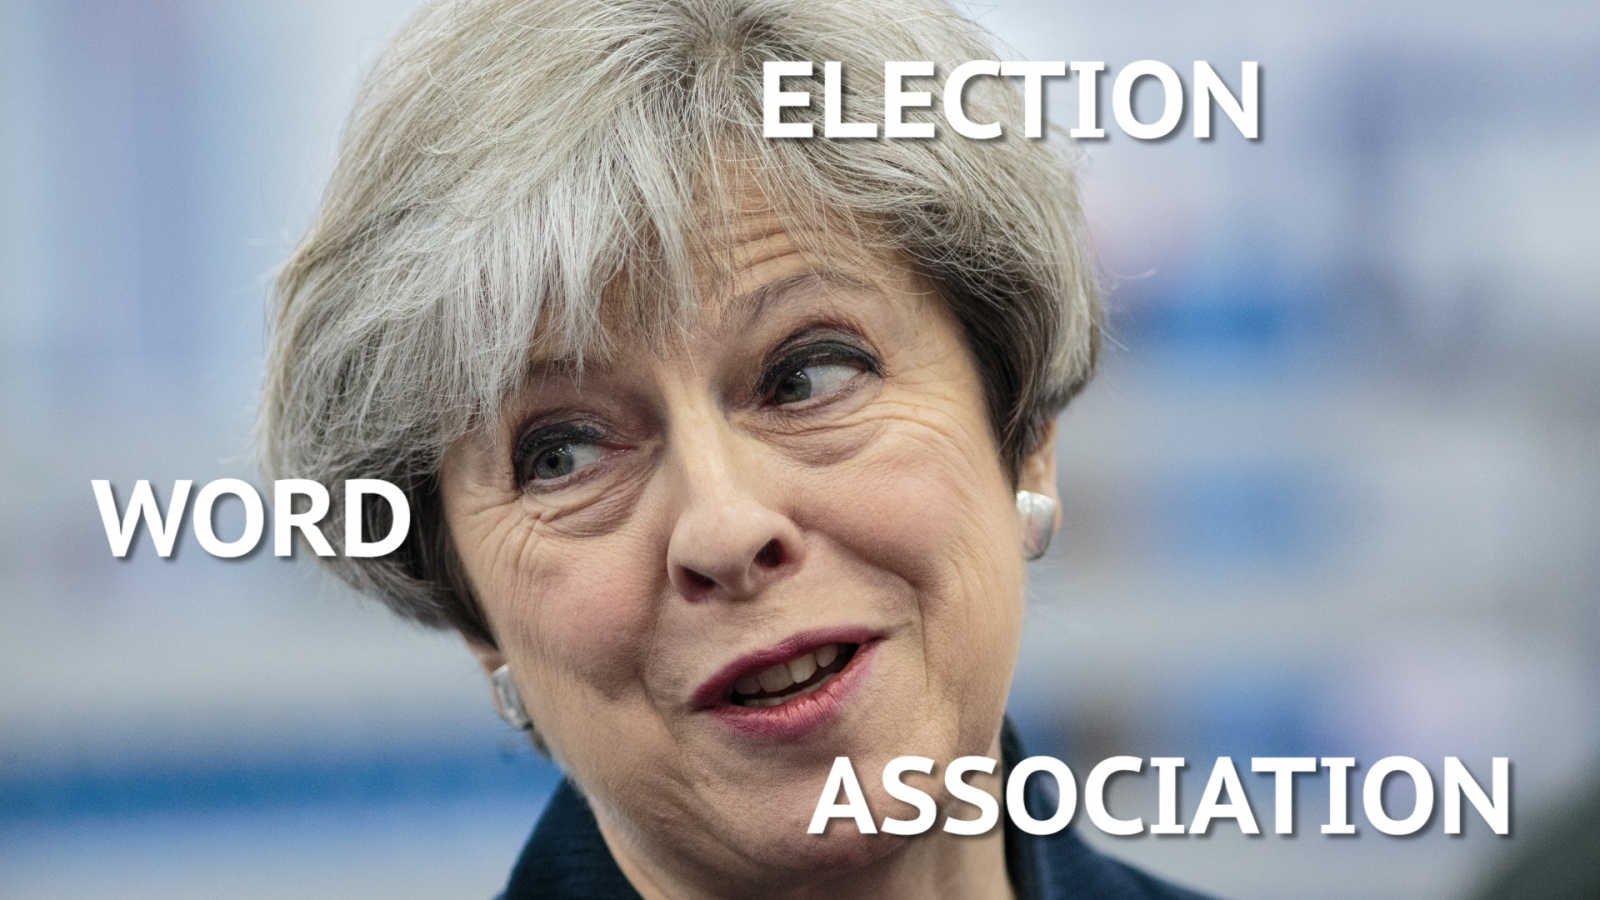 we-played-election-word-association-with-people-in-london-heres-what-they-said